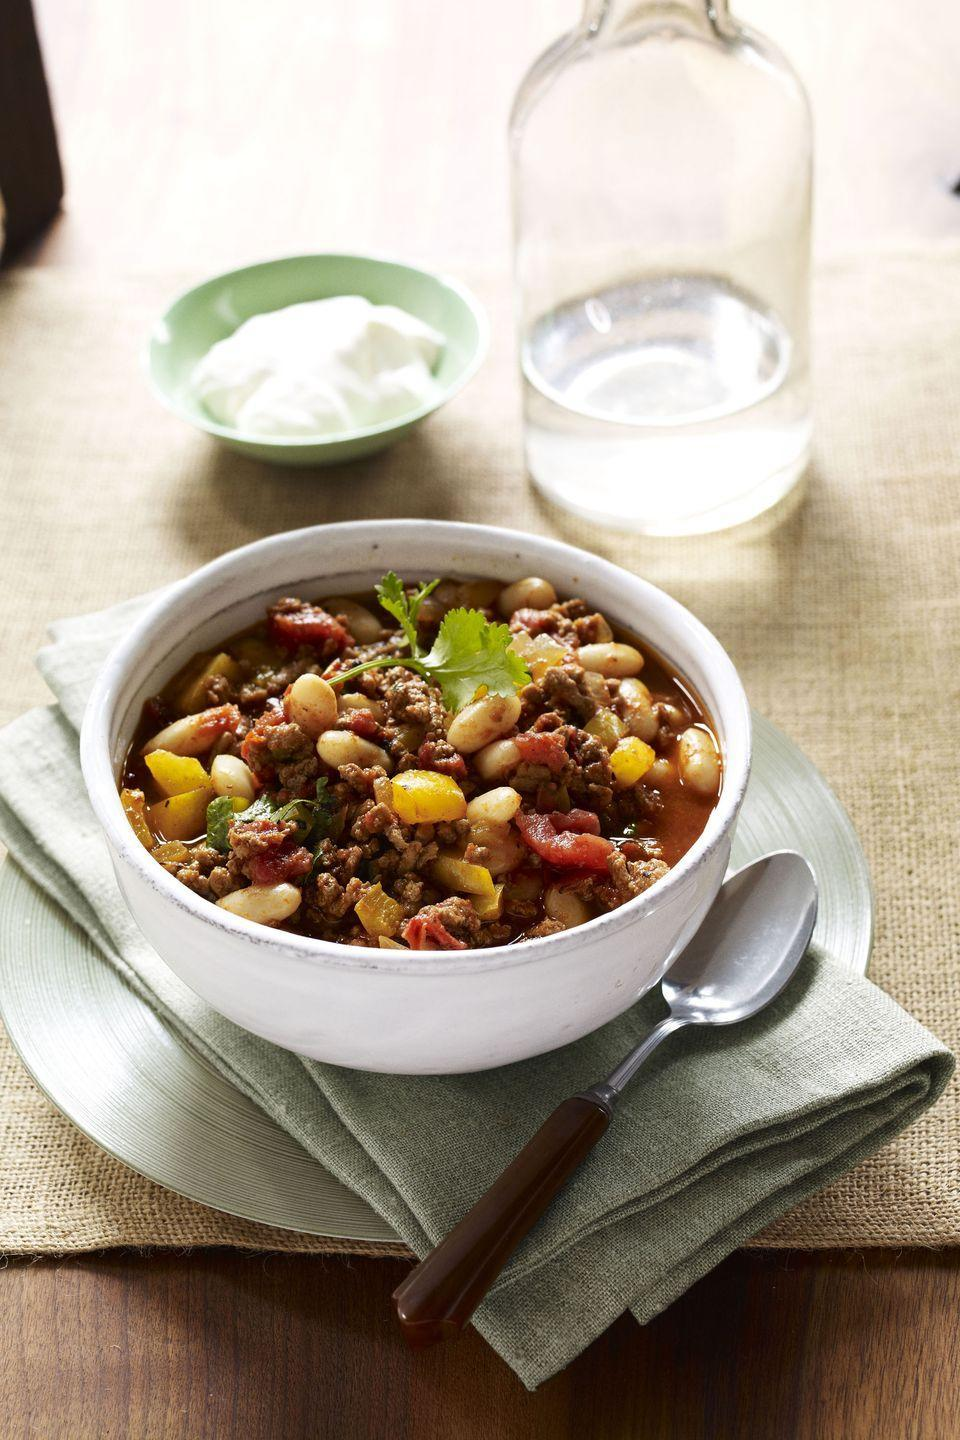 "<p>This recipe calls for ground turkey instead of ground beef, making it a leaner option, but it's still as flavor-packed as your go-to.</p><p><a href=""https://www.goodhousekeeping.com/food-recipes/a13395/turkey-bean-chili-recipe-ghk0112/"" rel=""nofollow noopener"" target=""_blank"" data-ylk=""slk:Get the recipe for Turkey-Bean Chili »"" class=""link rapid-noclick-resp""><em>Get the recipe for Turkey-Bean Chili »</em></a></p>"